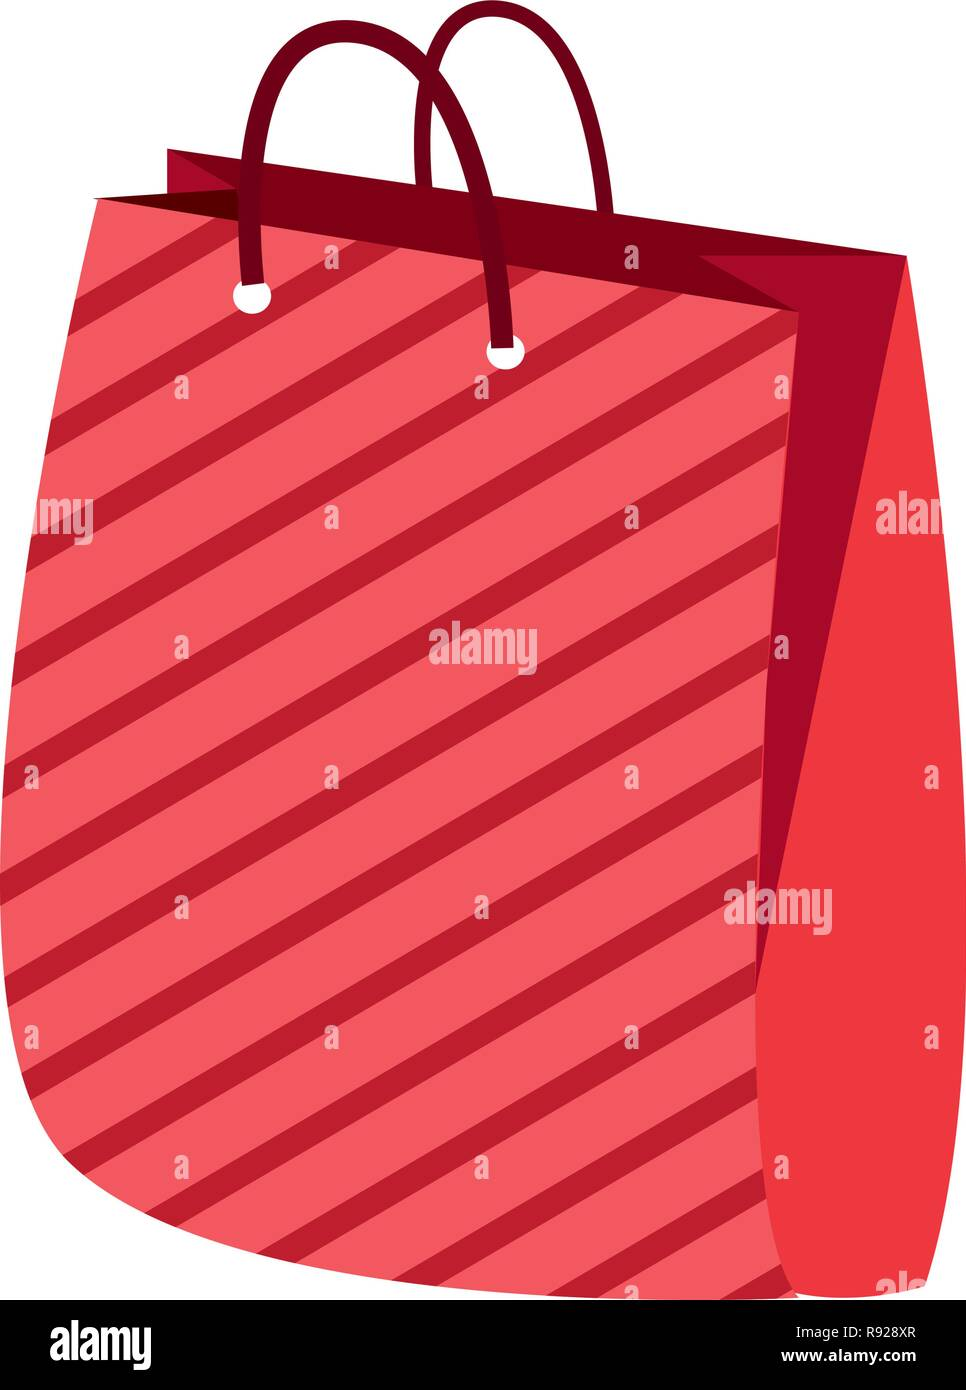 online shopping bag ribbon offer vector illustration Stock Vector ... 910a2a6a180b5